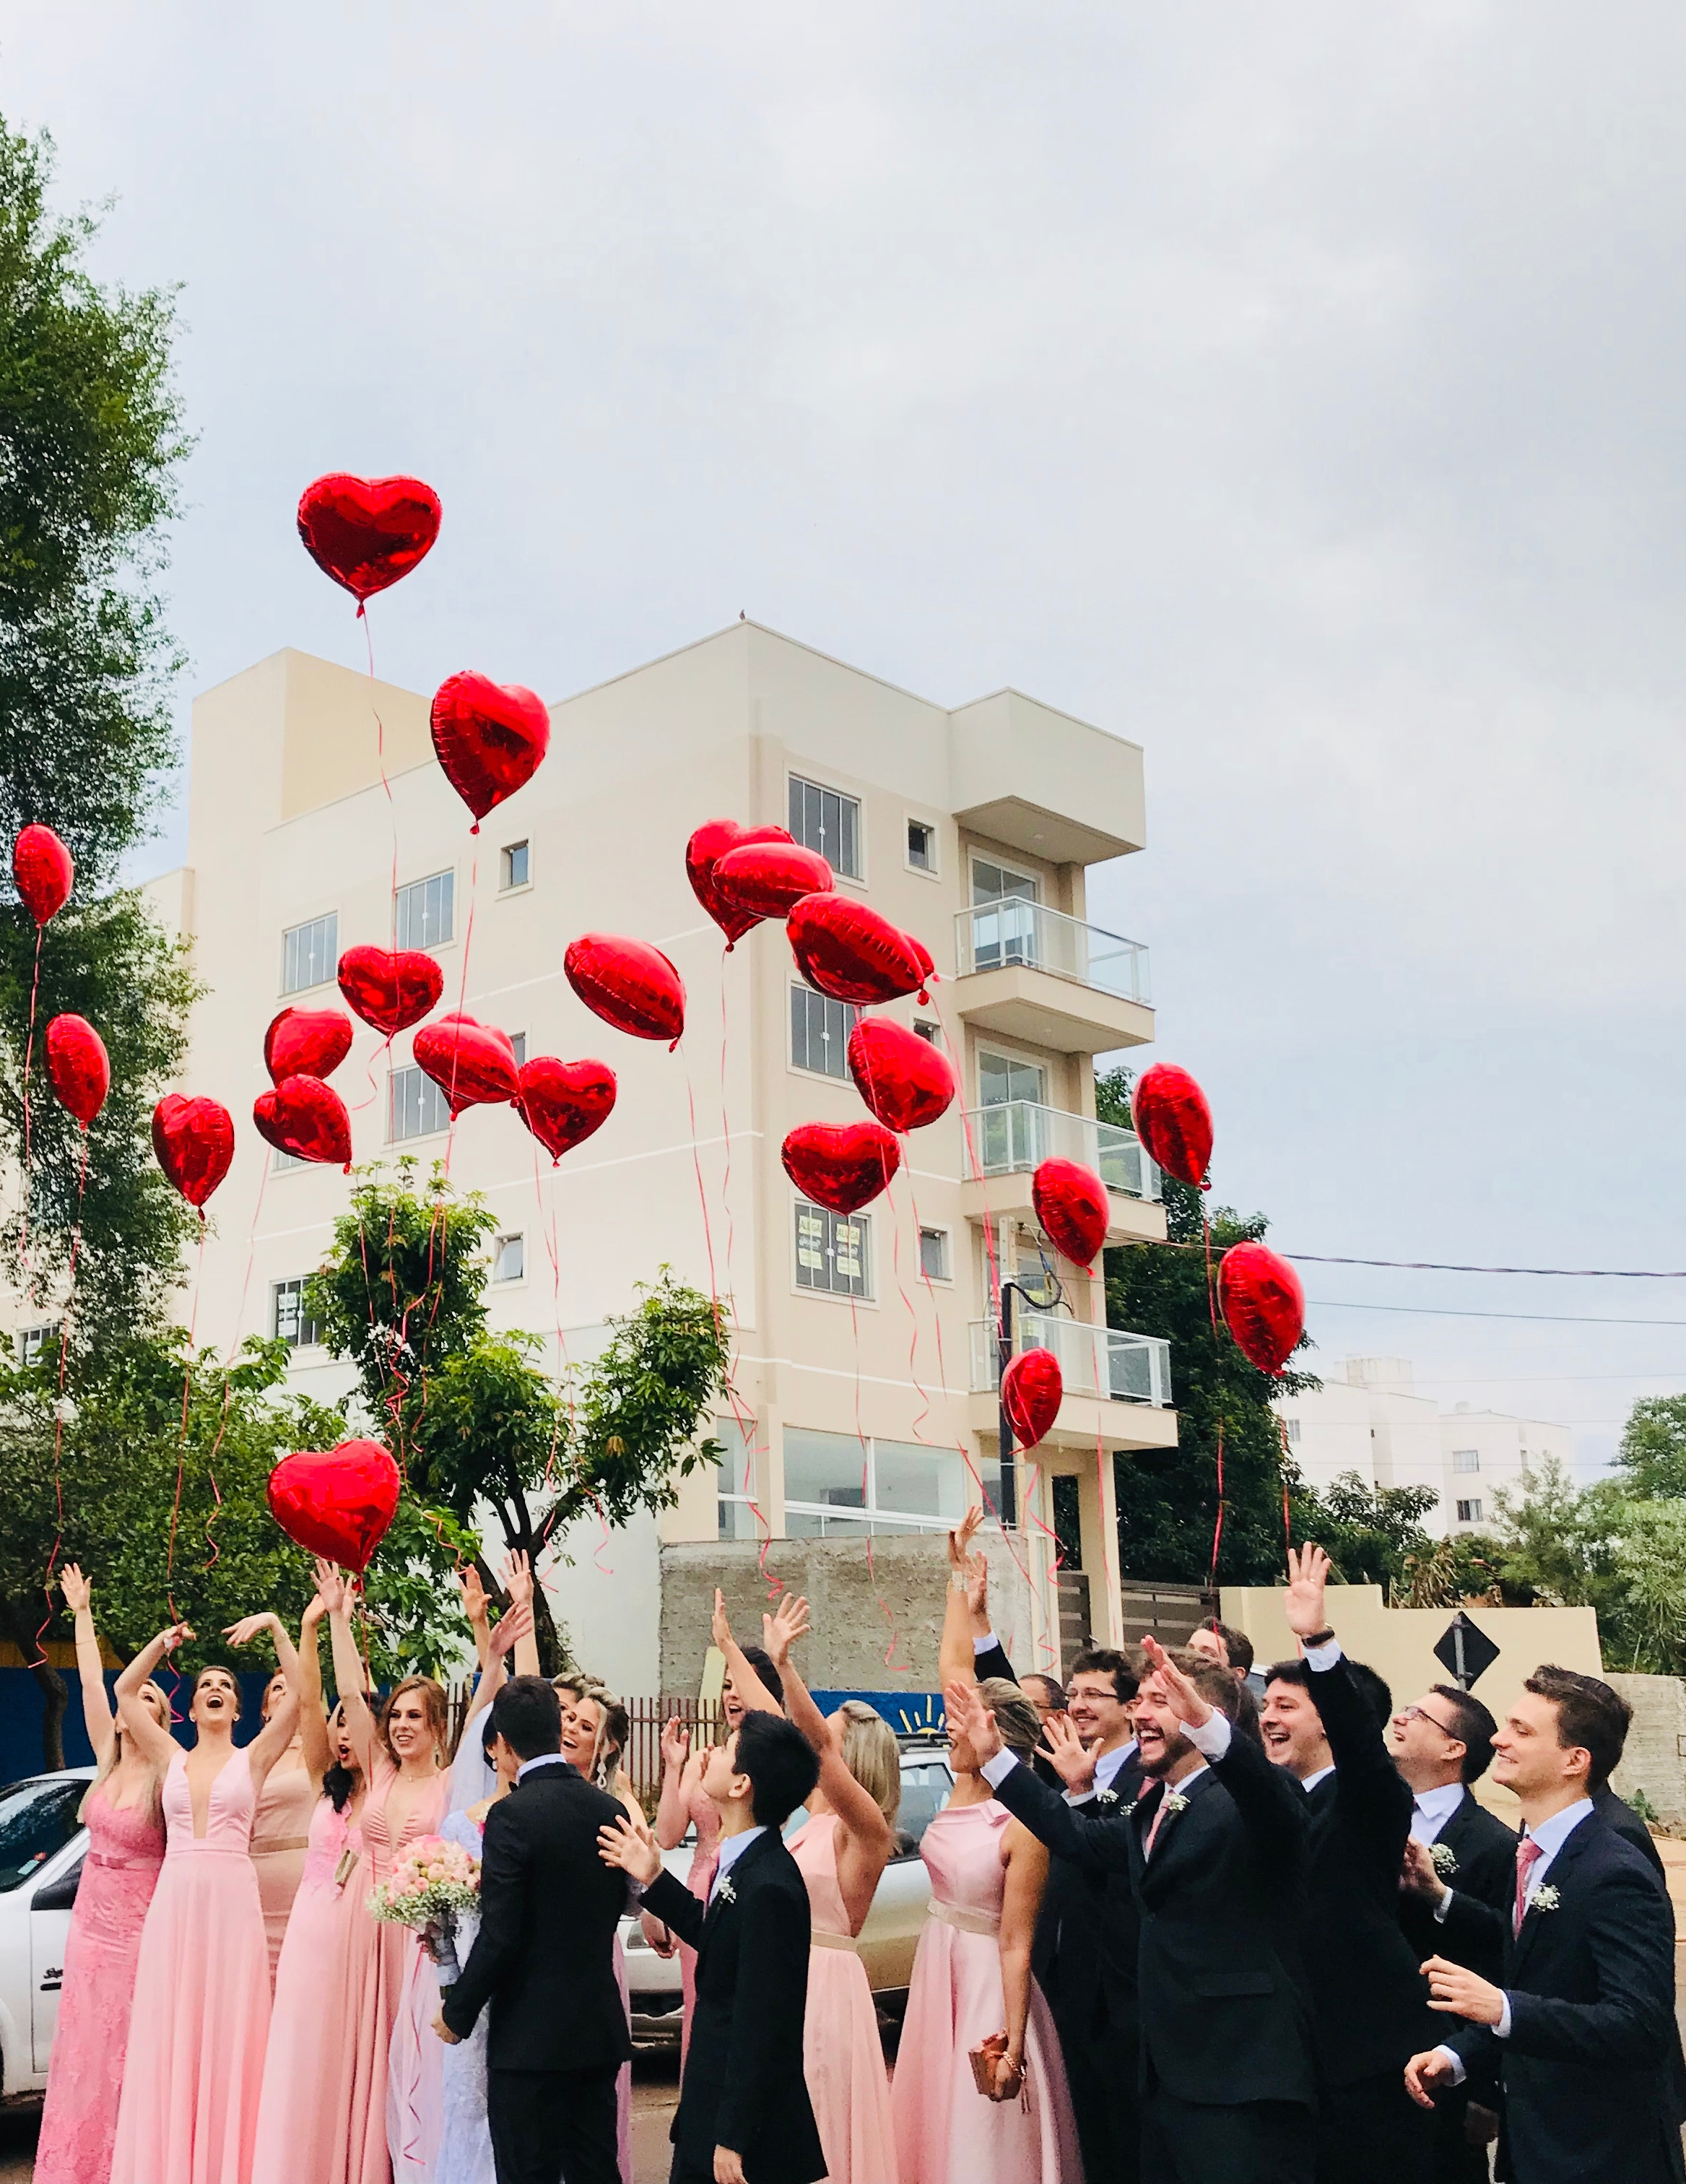 Women wearing pink dresses and men wearing black suit jacket and pants raising hands with red heart balloons photo